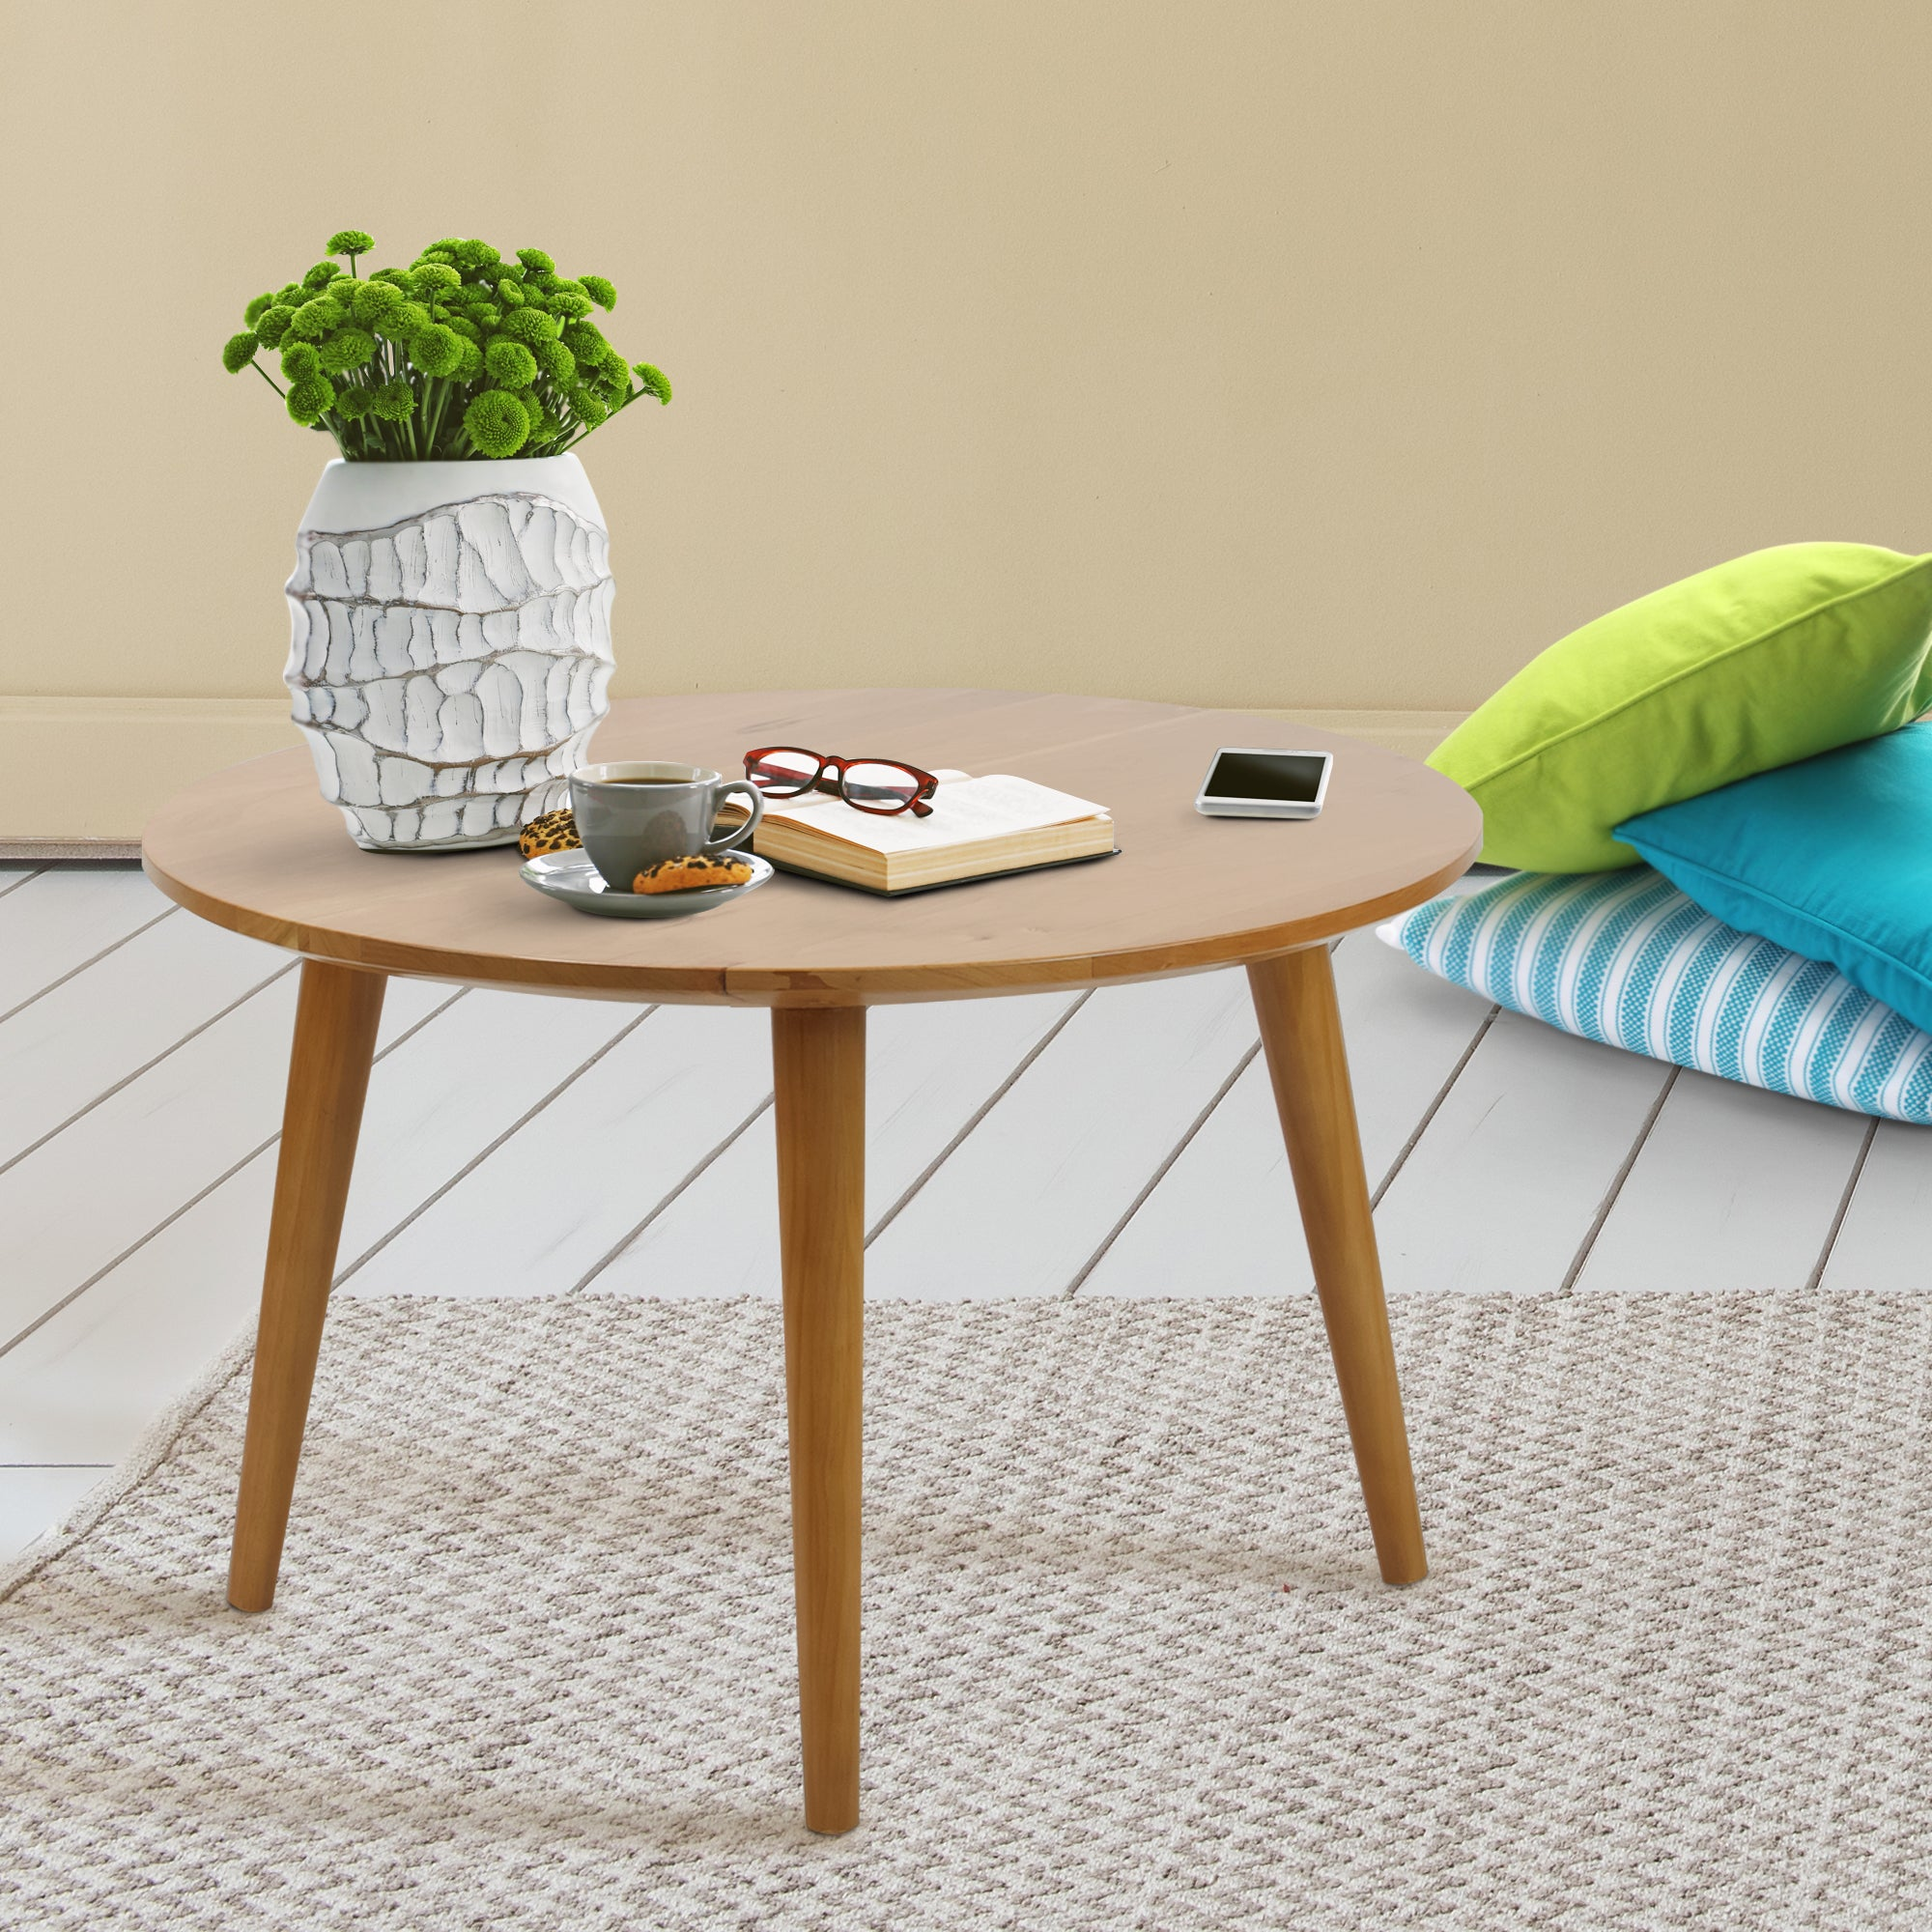 Wood For Coffee Table Top: Shop American Trails Mesa Mid Century Modern Round Coffee